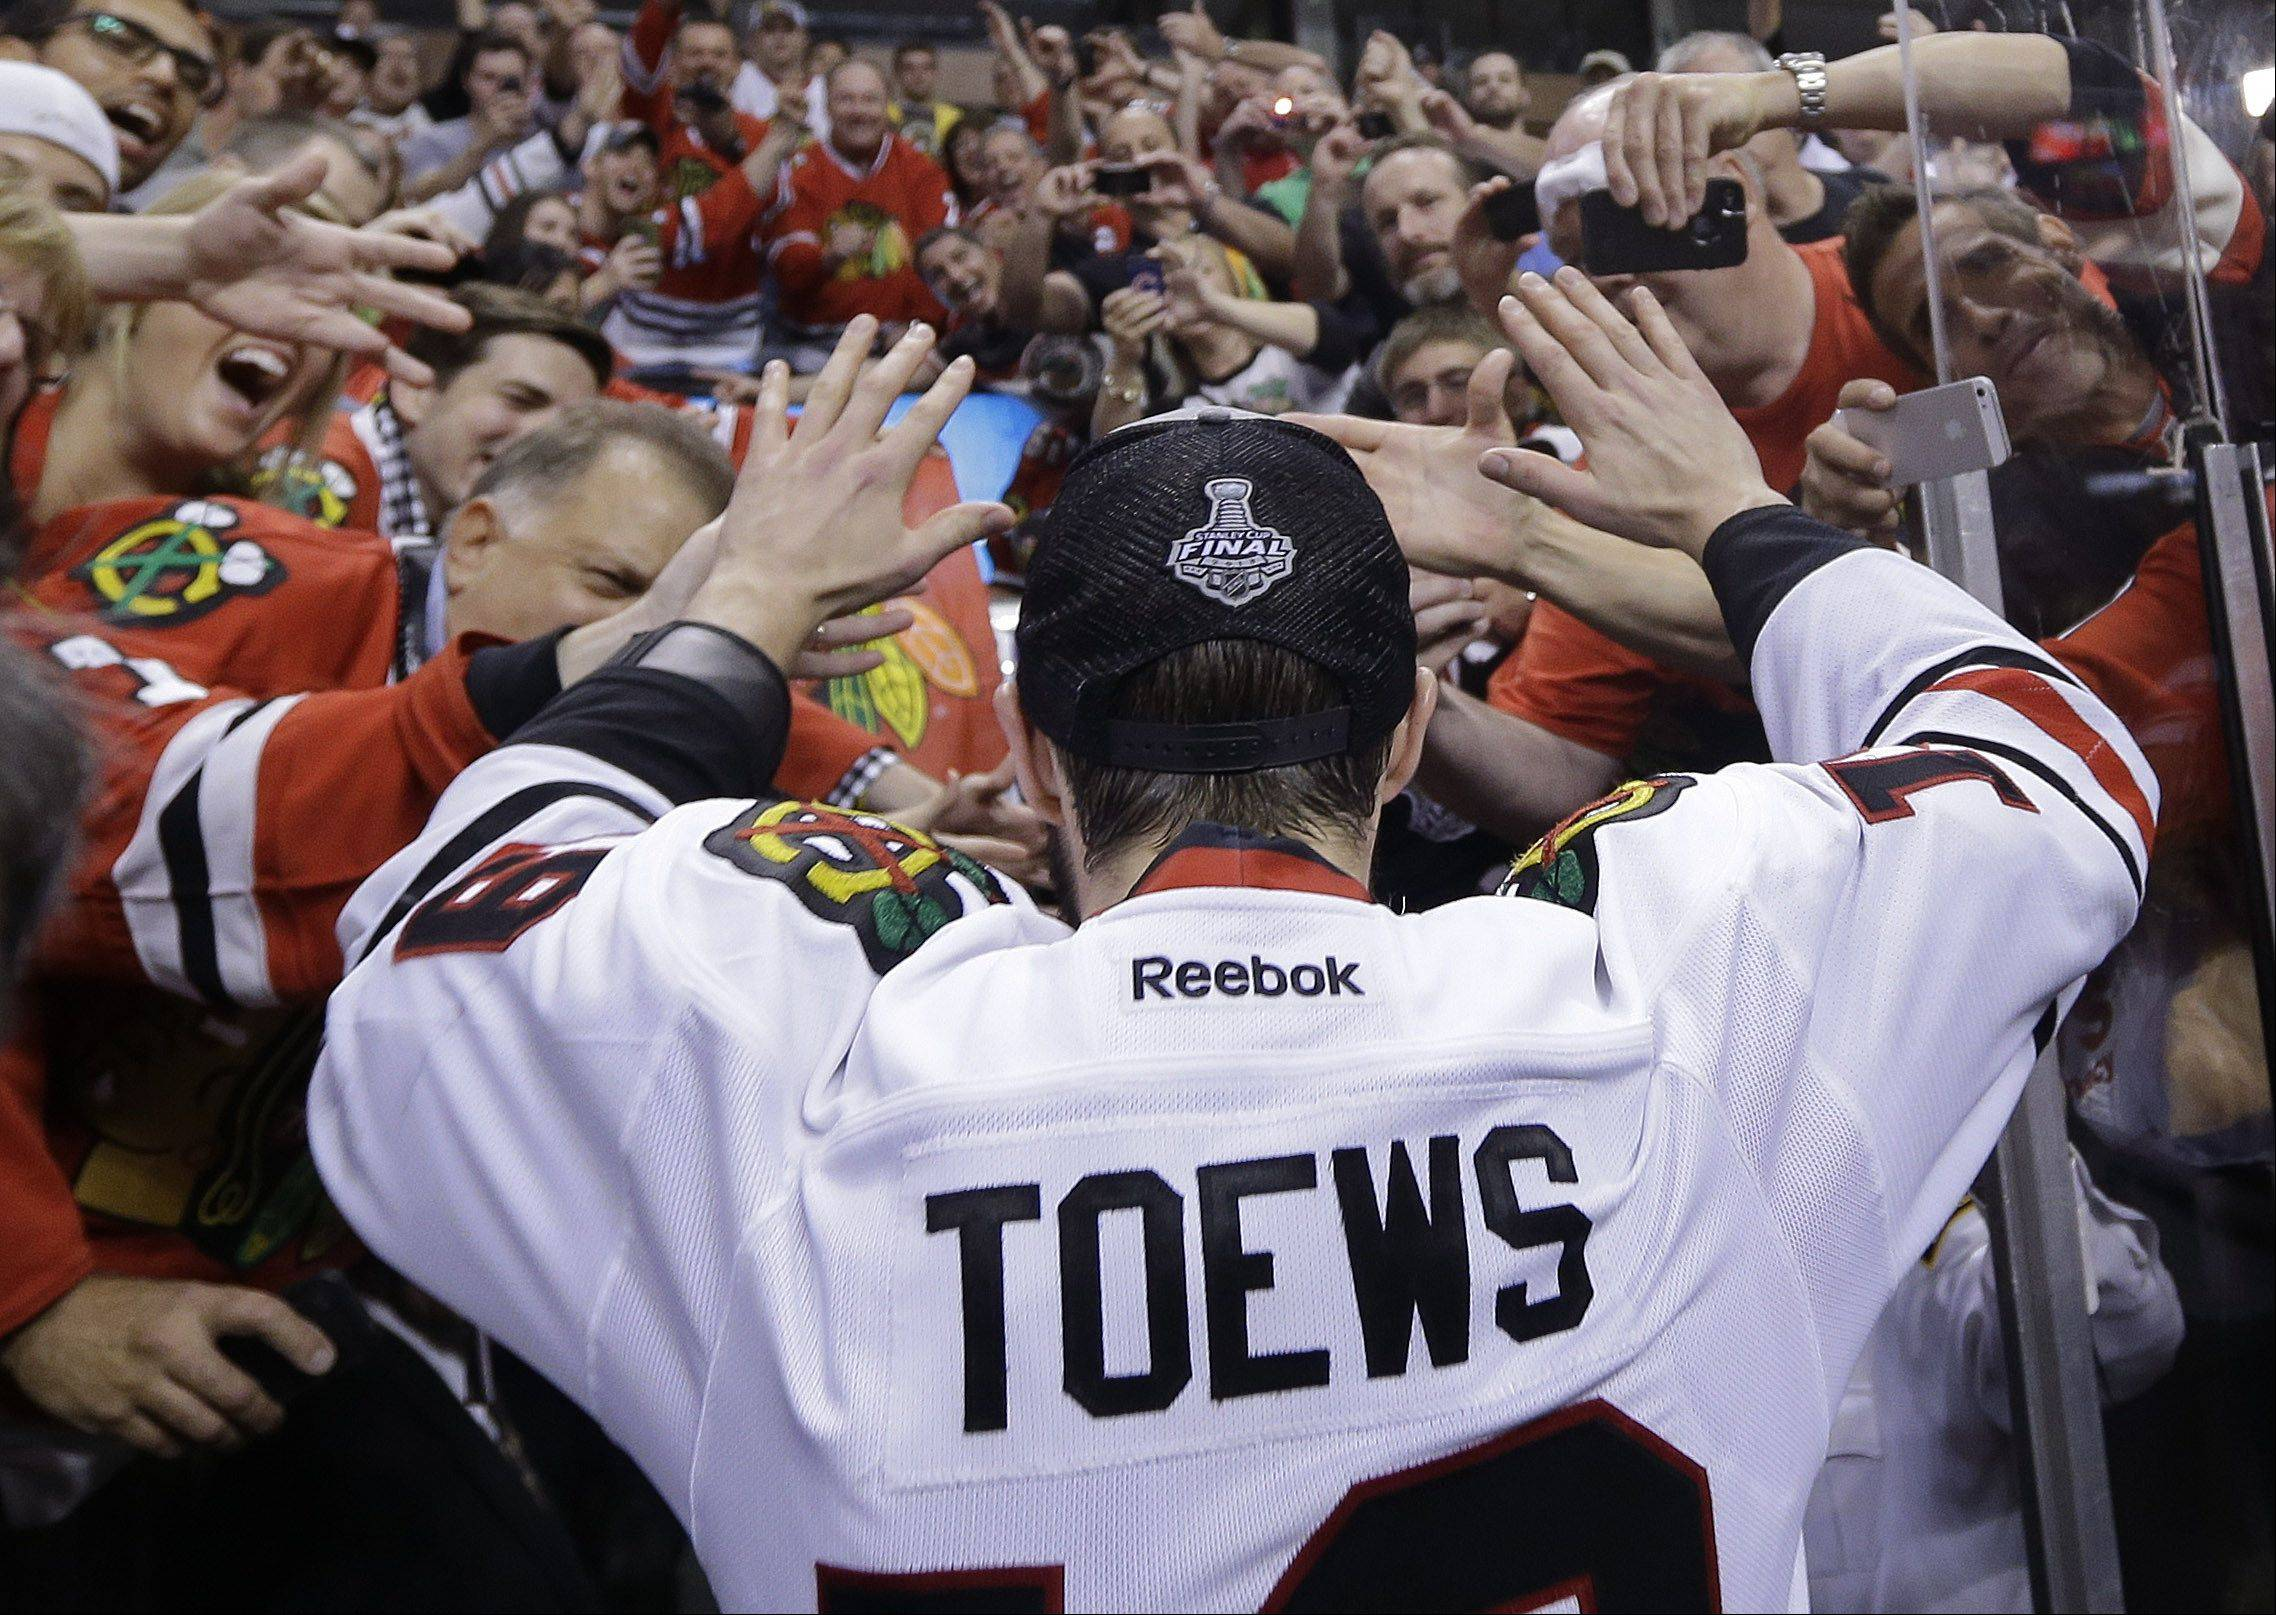 Fans give high-fives to Chicago Blackhawks center Jonathan Toews after the Blackhawks beat the Boston Bruins in Game 6 of the NHL Stanley Cup Finals Monday, June 24, 2013, in Boston.